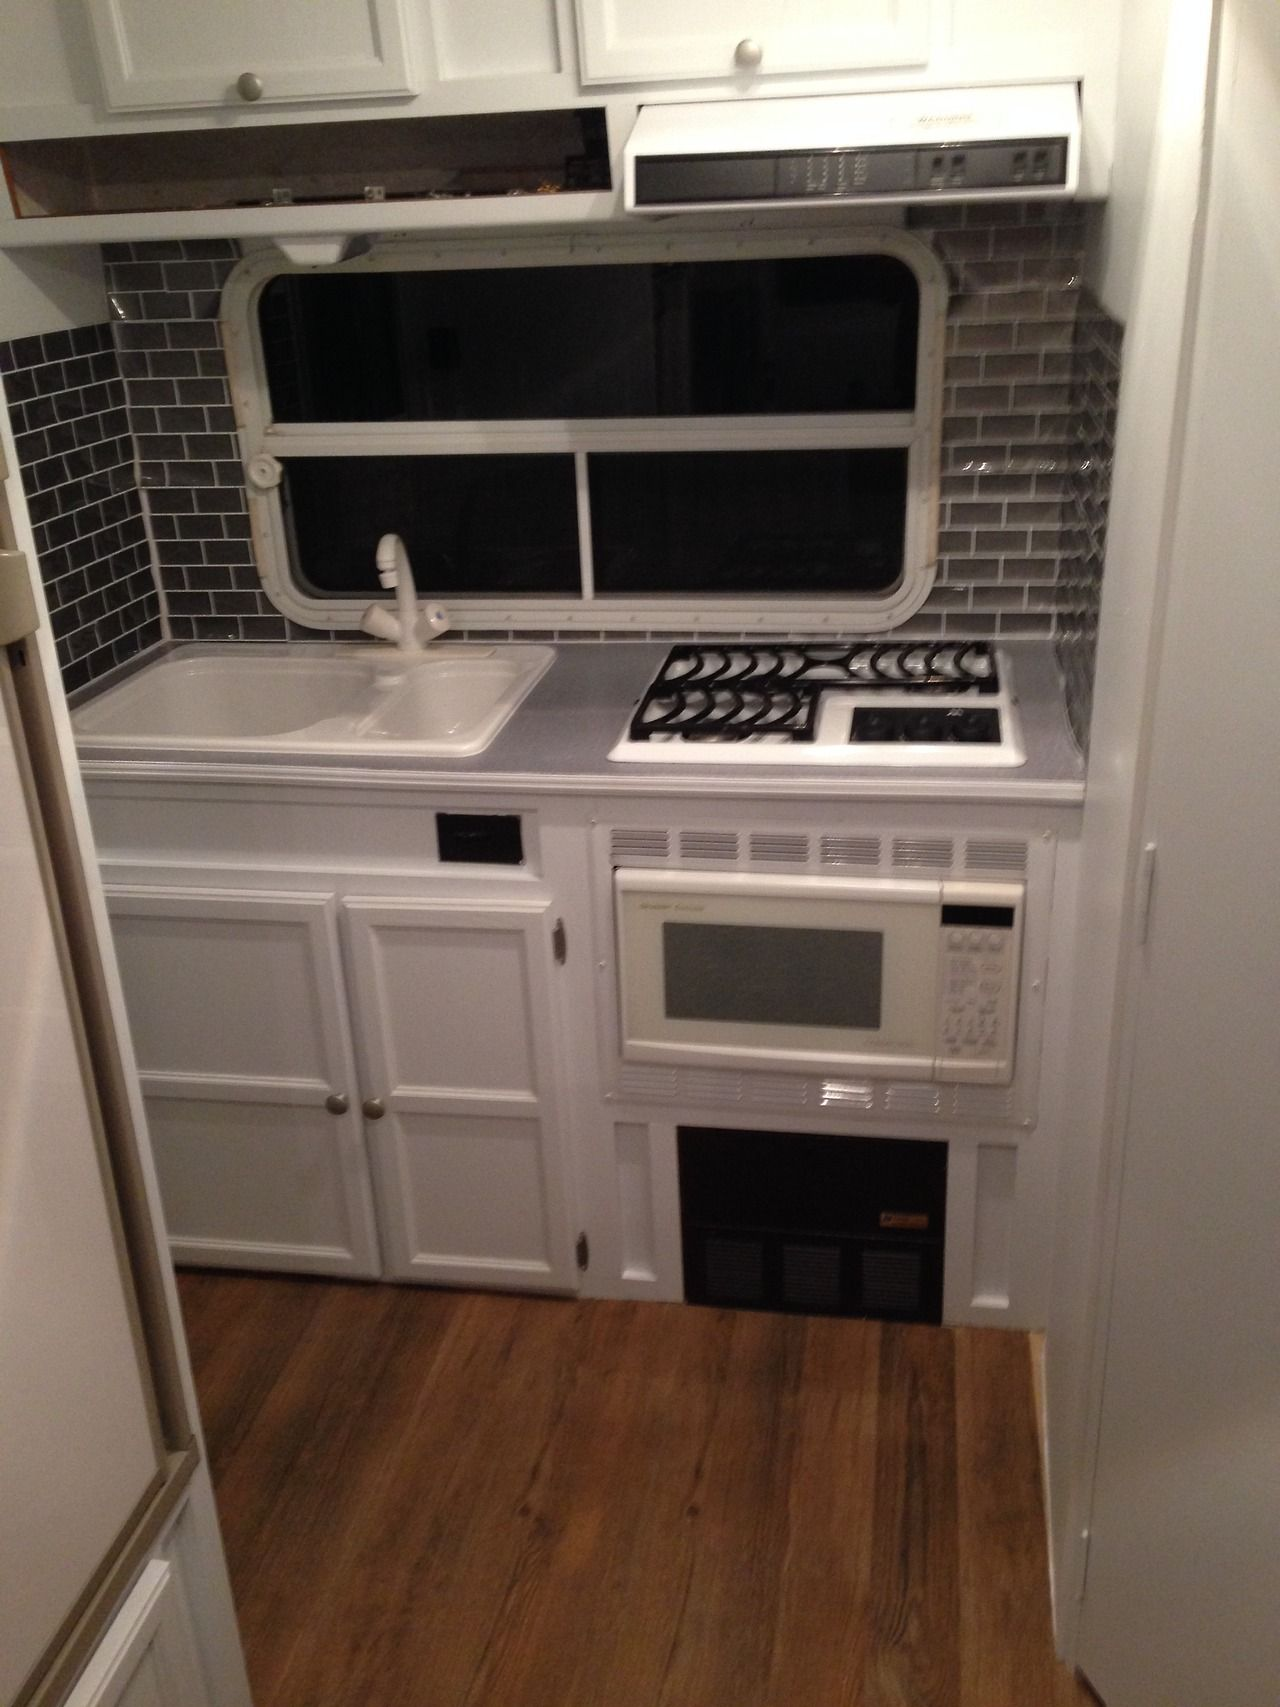 Easy Kitchen Renovation Blog About Camper Remodel Wood Floor Peel And Stick Easy To